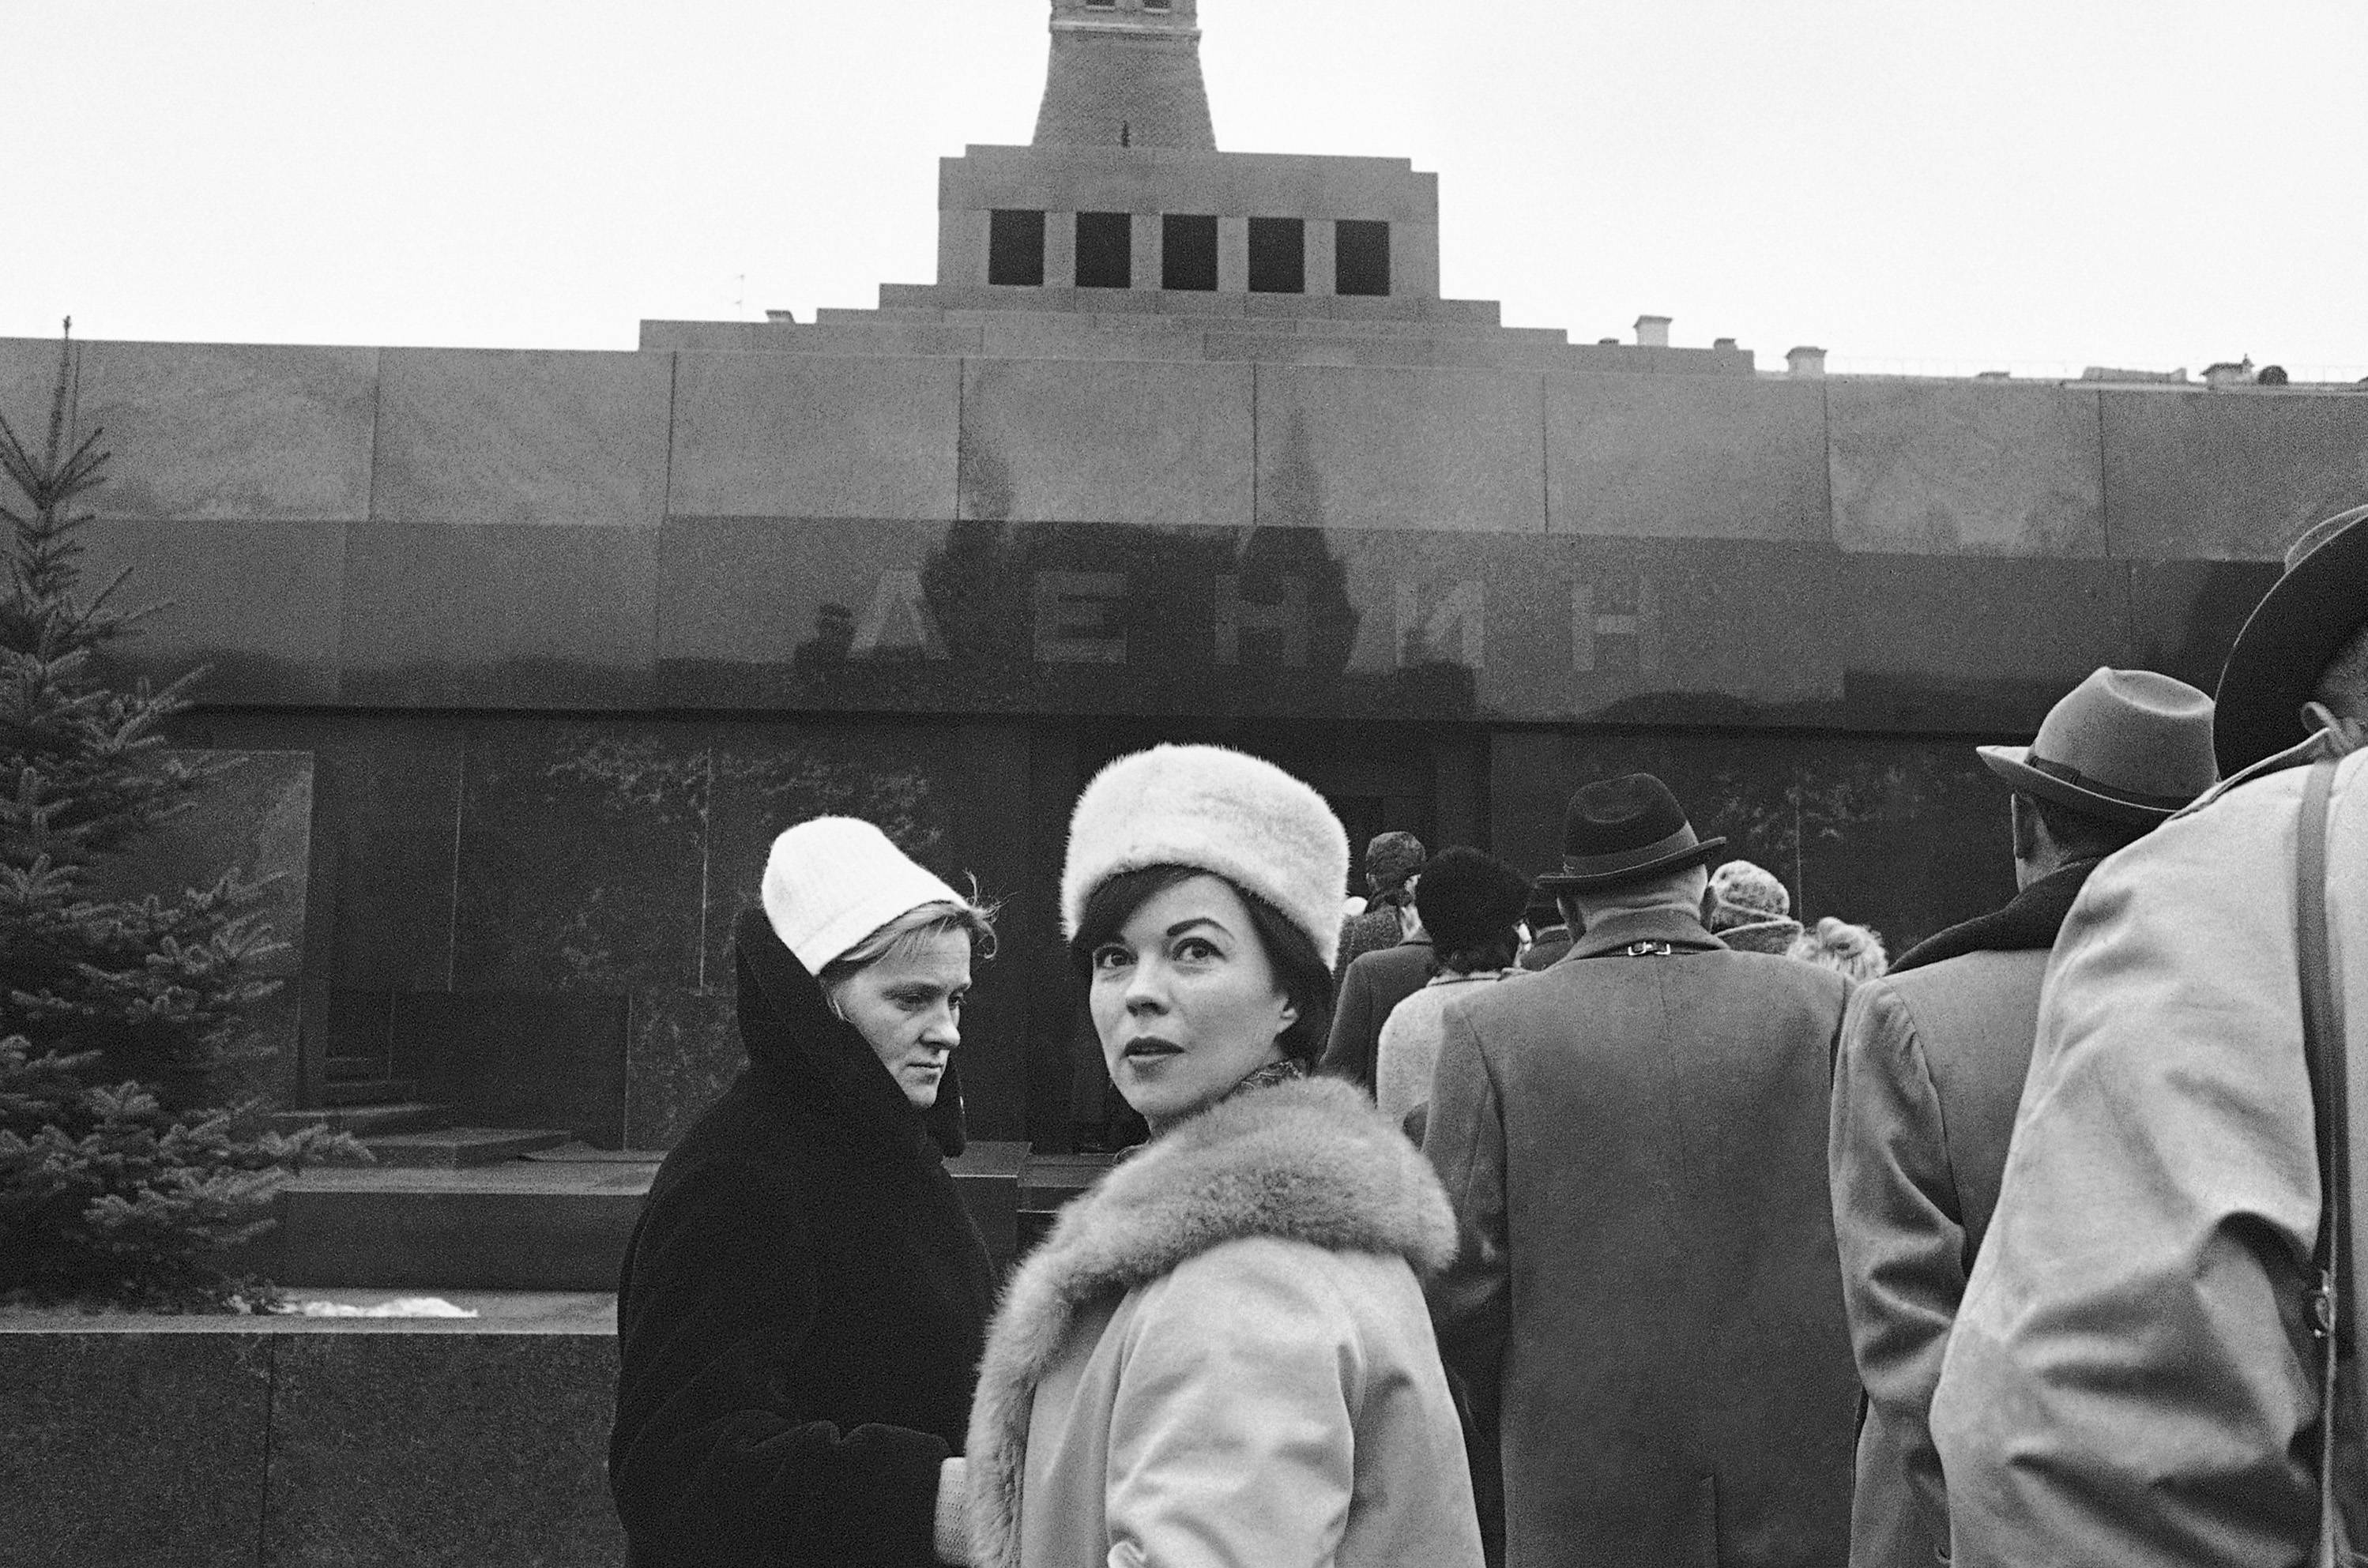 In this March 21, 1965, file photo, Shirley Temple, former child film star, waits in the line to visit Lenin's tomb in Red Square, in Moscow. Temple was in Moscow to consult Russian neurologists about her brother, who has multiple sclerosis.